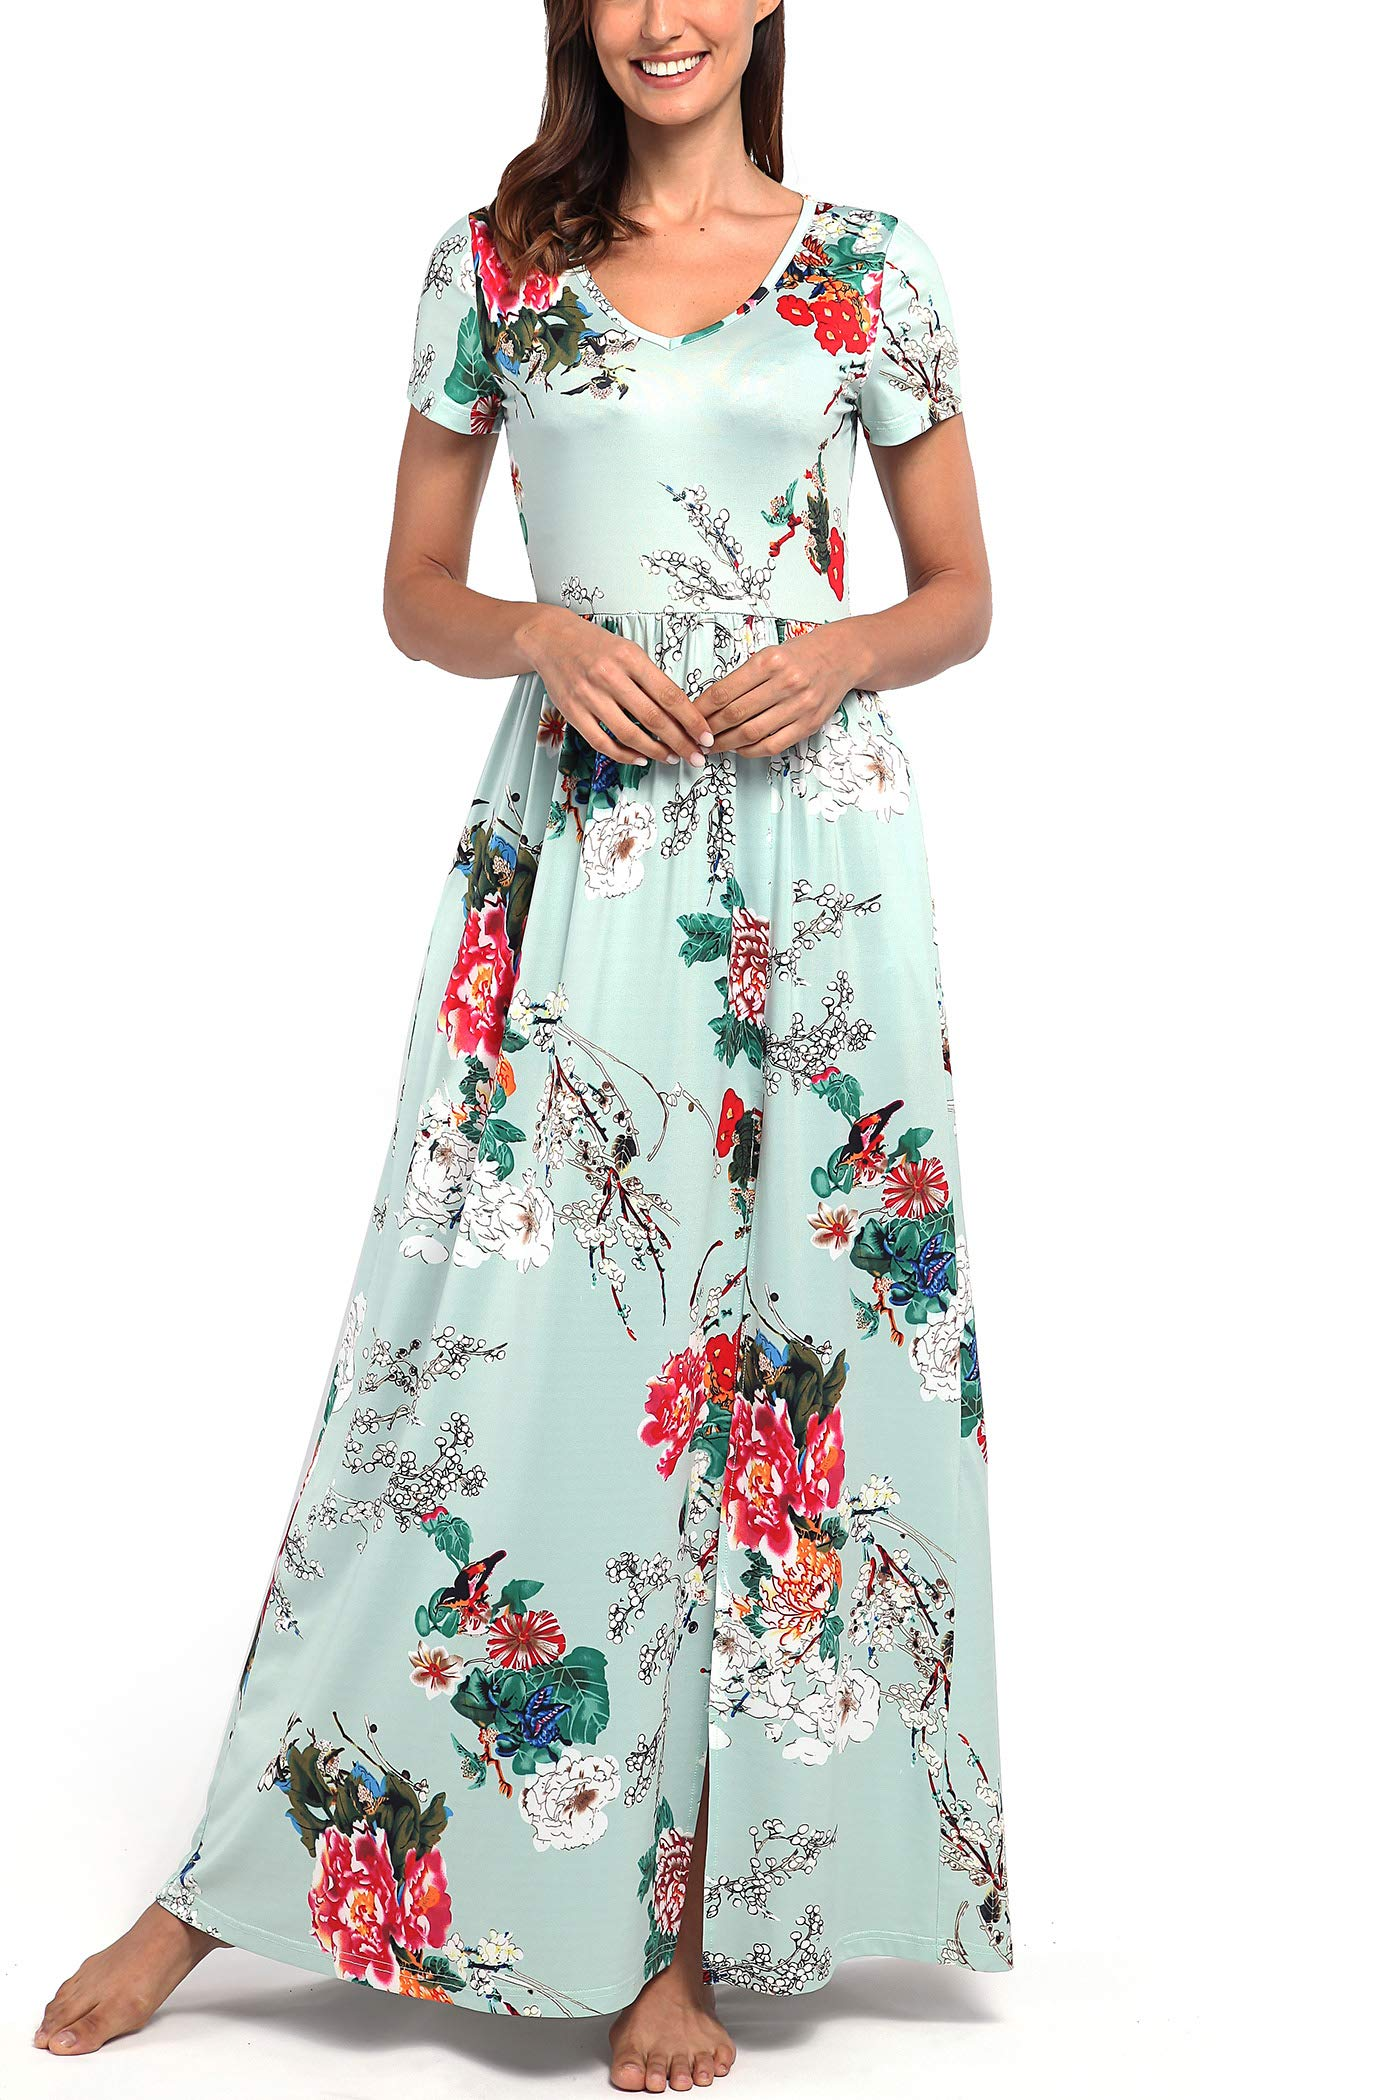 Comila Flowy Dresses for Women Plus Size, Classic Floral Split Maxi Dresses Flowy Summer Dresses Short Sleeve Travel Formal Party Casual Beach Dress Turquoise XXL (US 18-20)